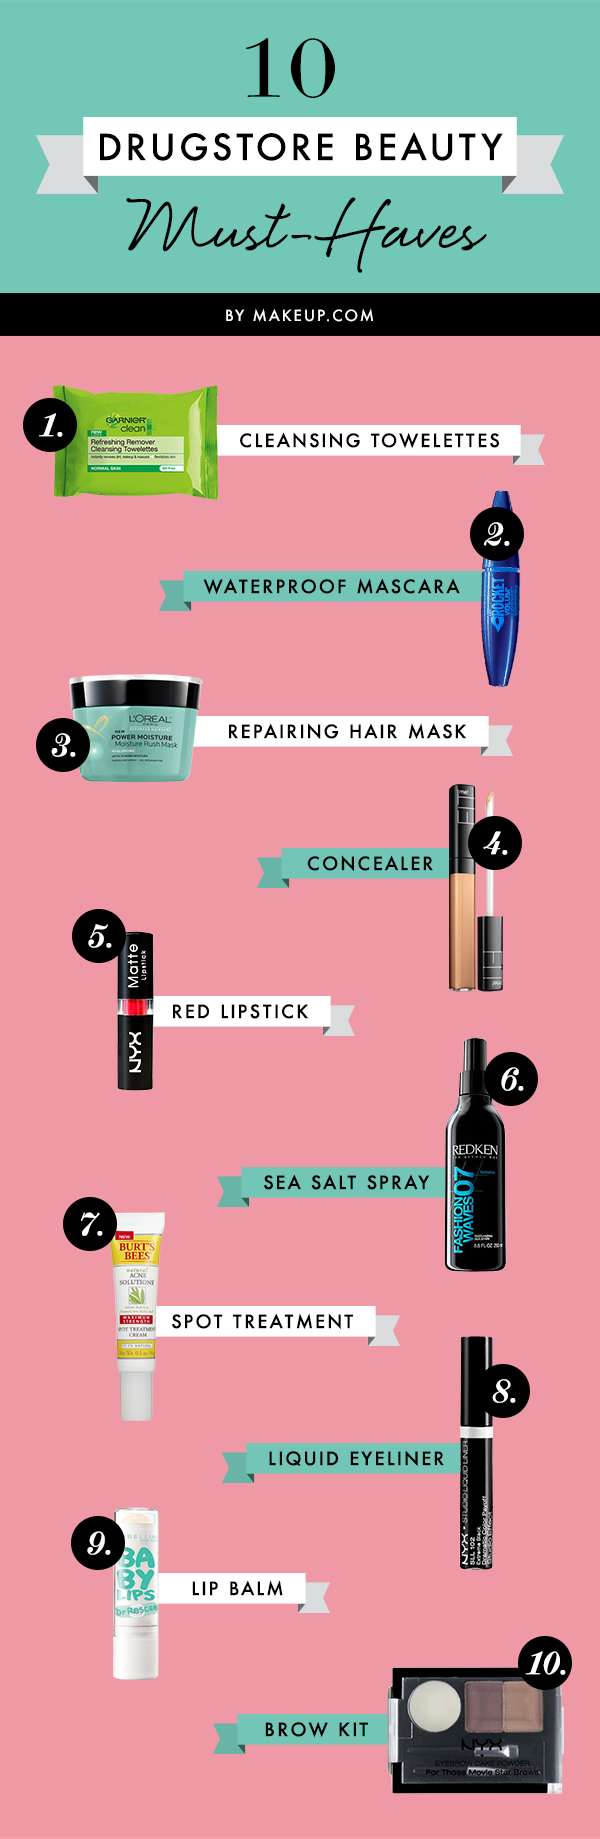 10 Drugstore Beauty Must-Haves.Makeup.com